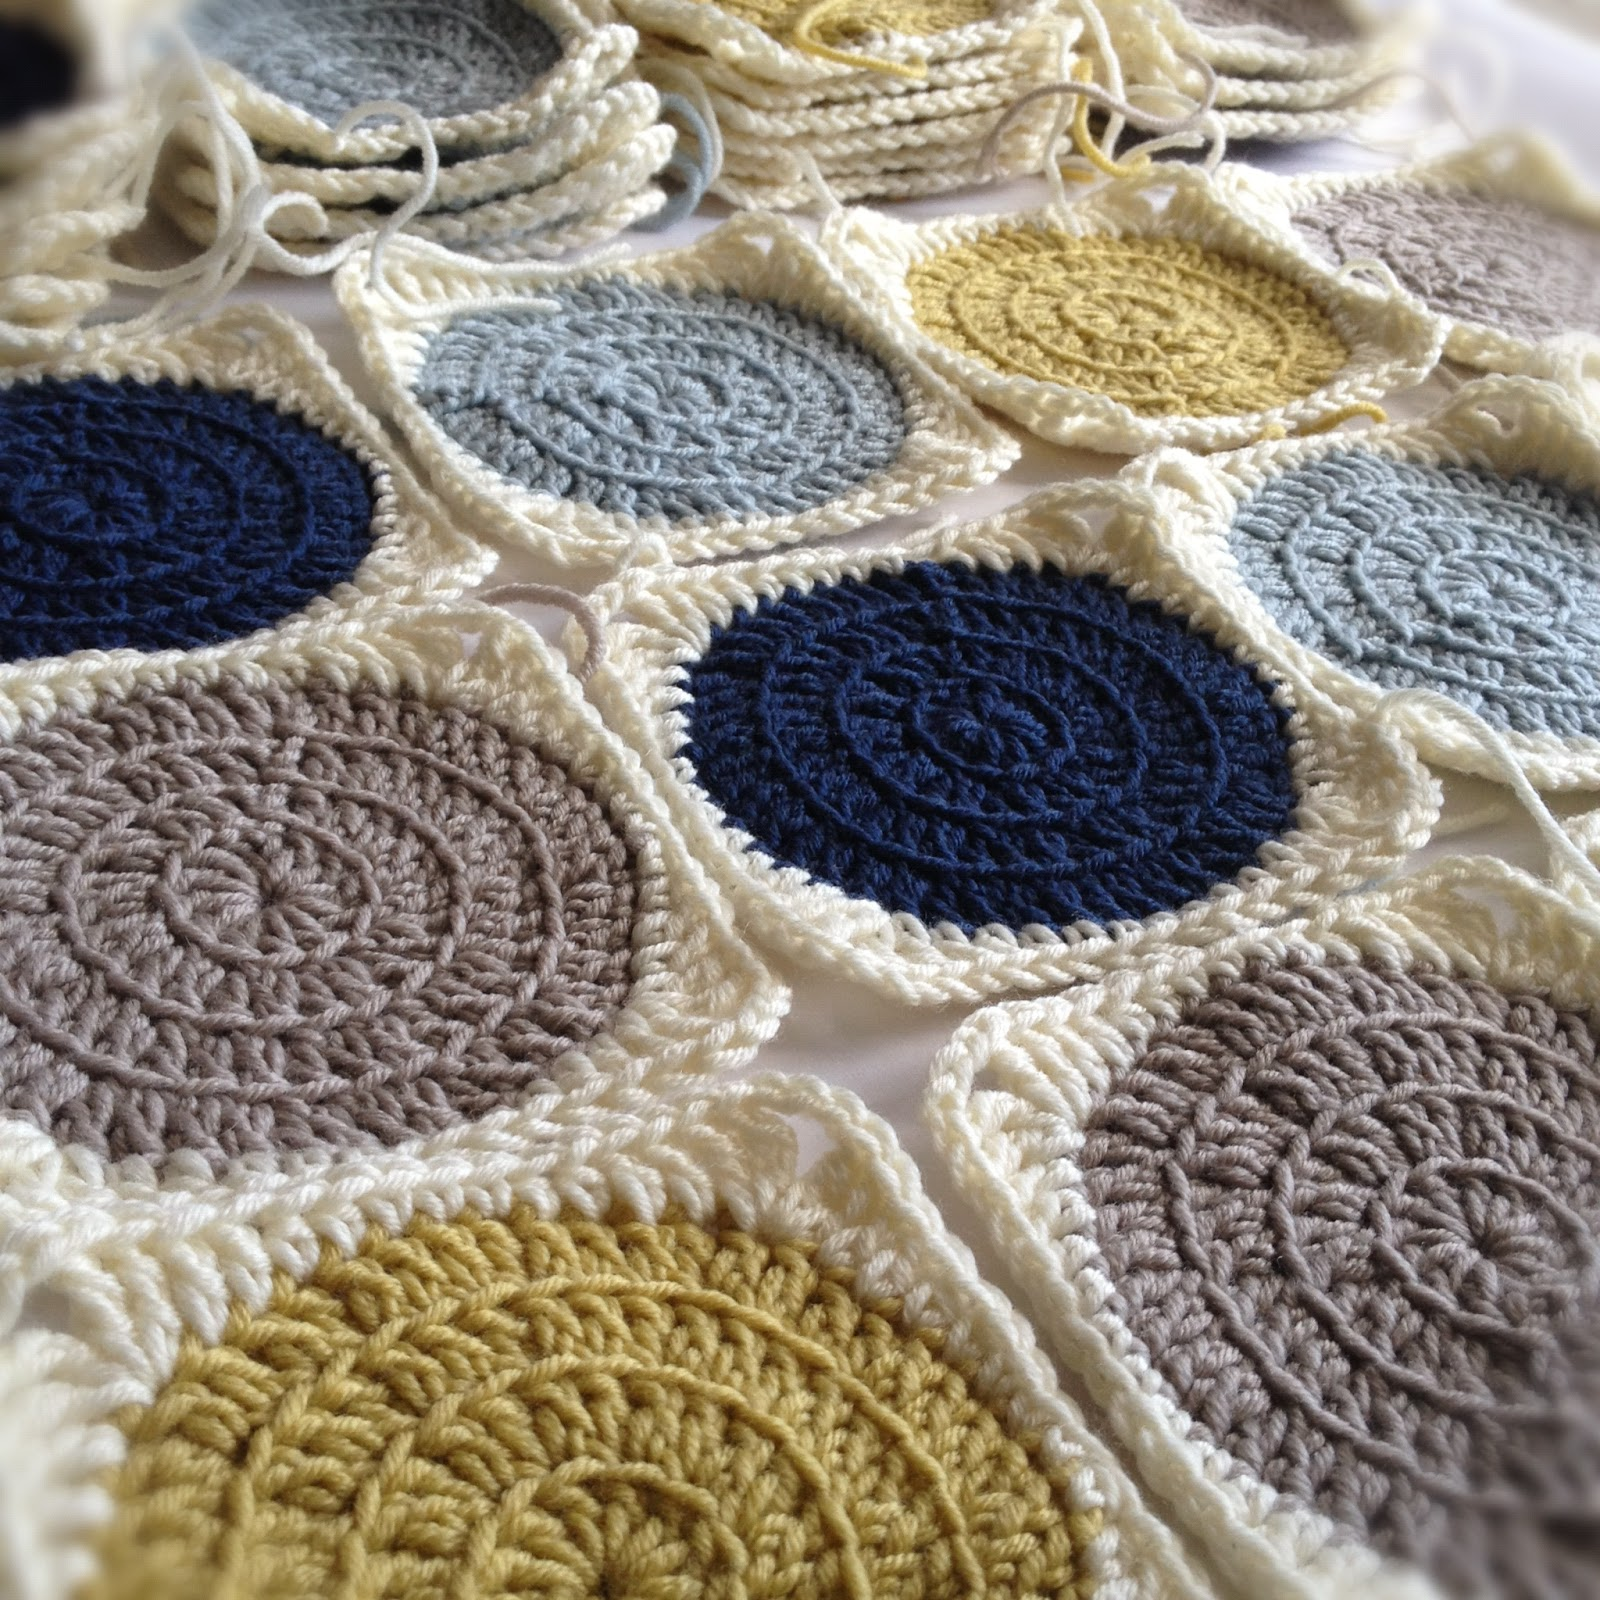 Crochet In A Circle : Disclaimer: Please do not sell my patterns or claim them as your own.